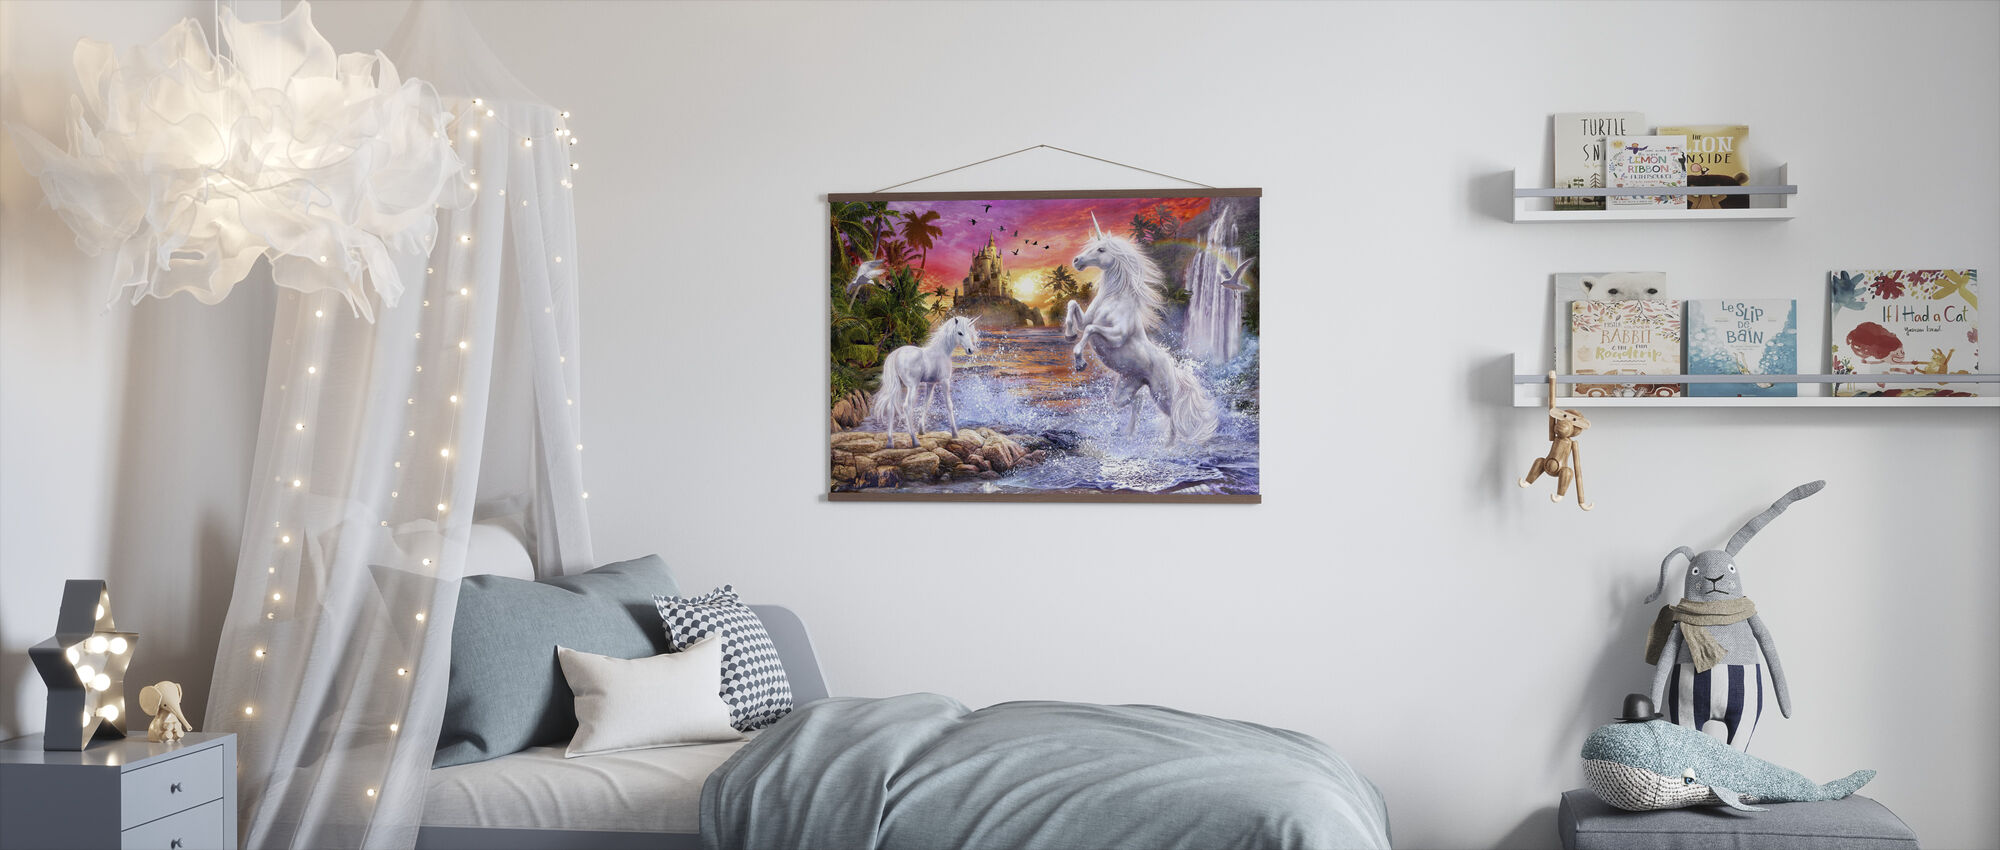 Unicorn Waterfall Sunset - Poster - Kids Room